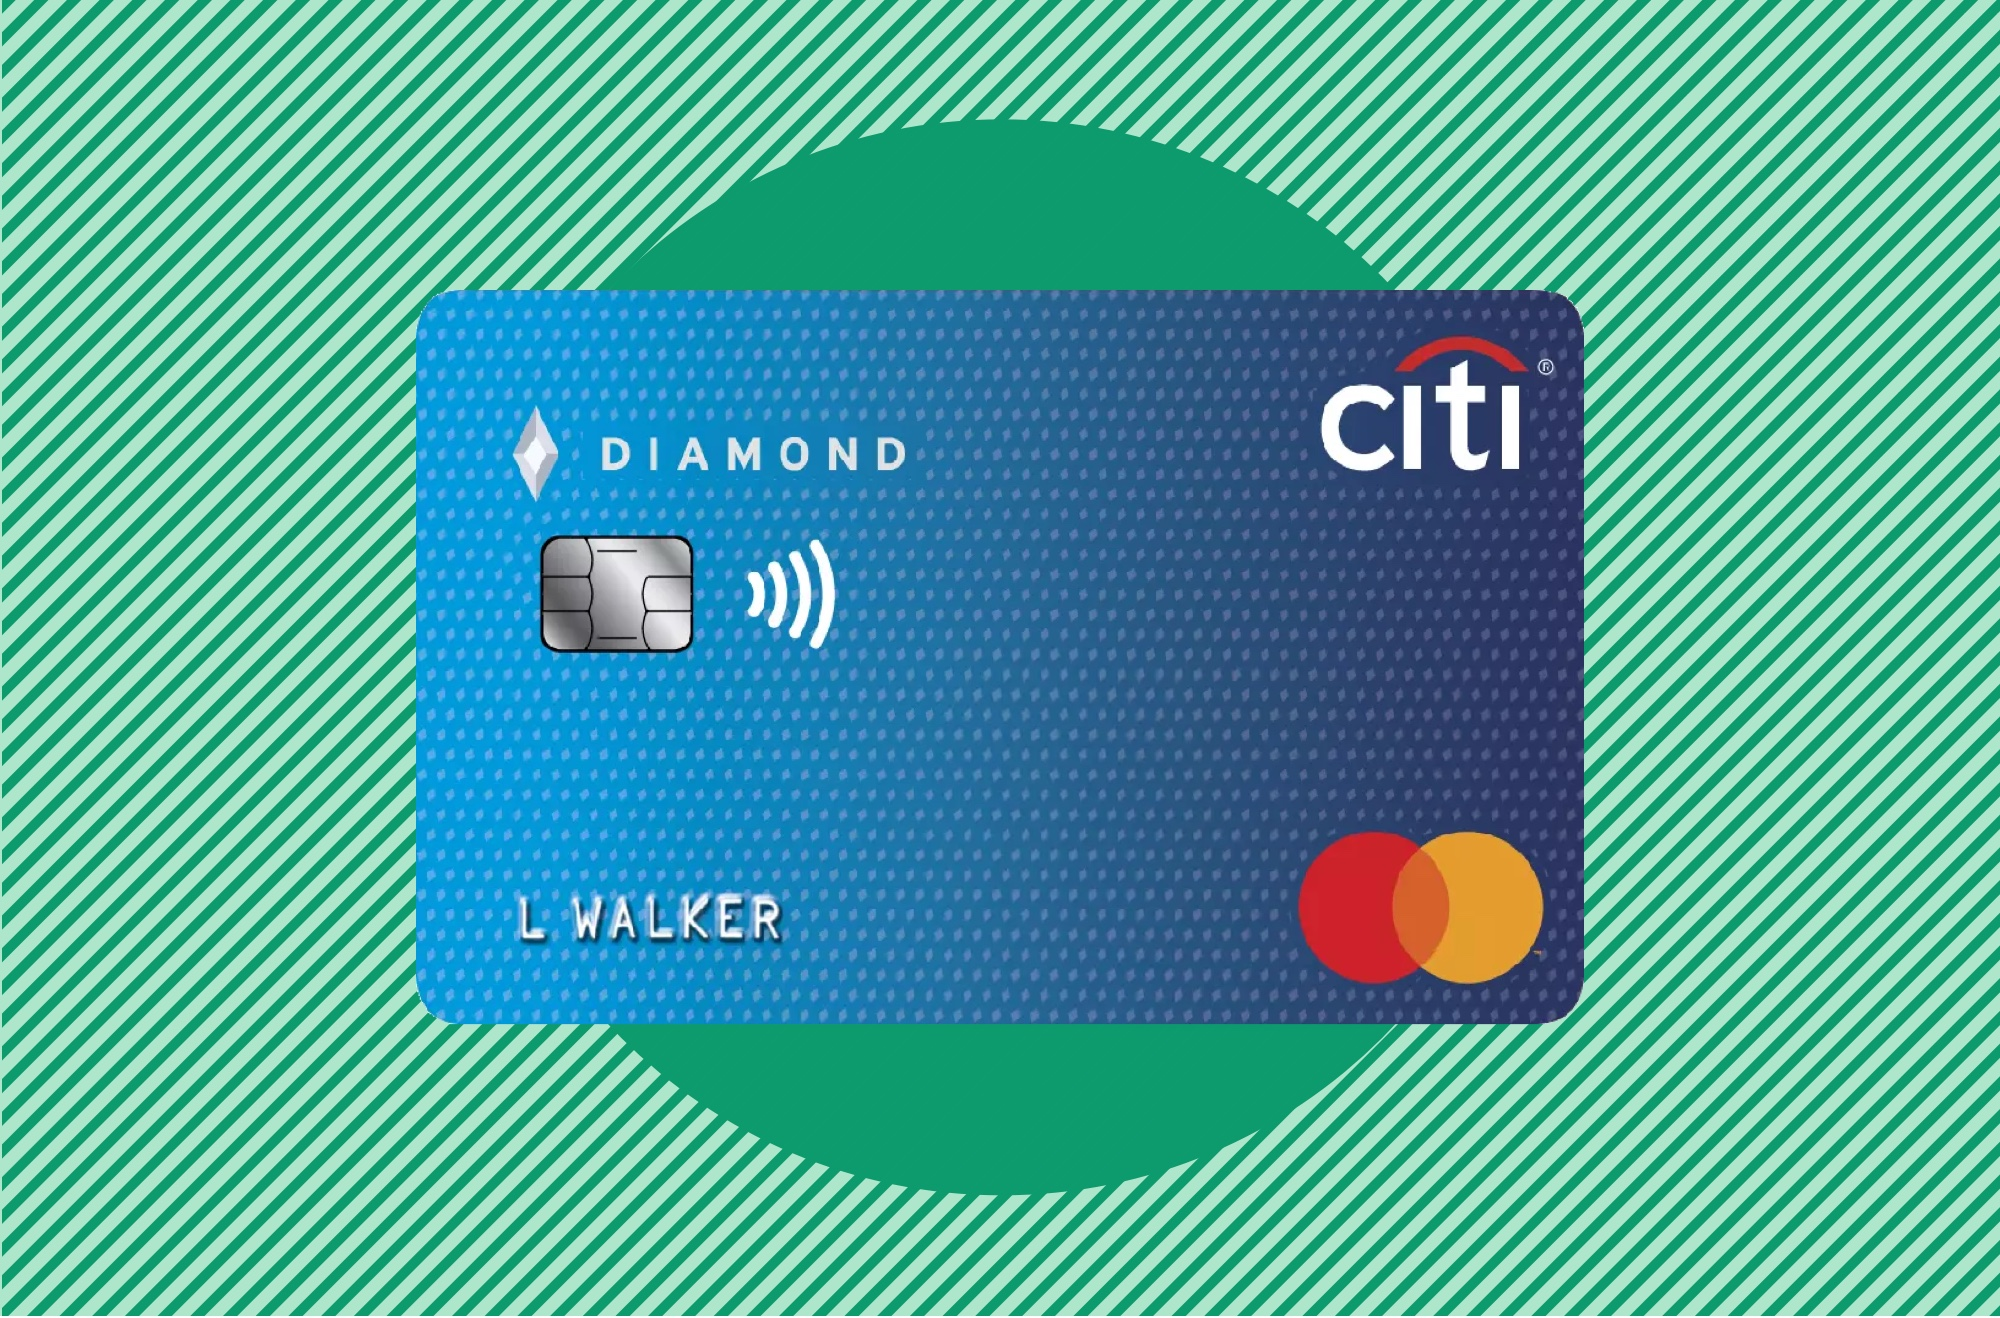 A photo to accompany a story about Citi Secured Mastercard